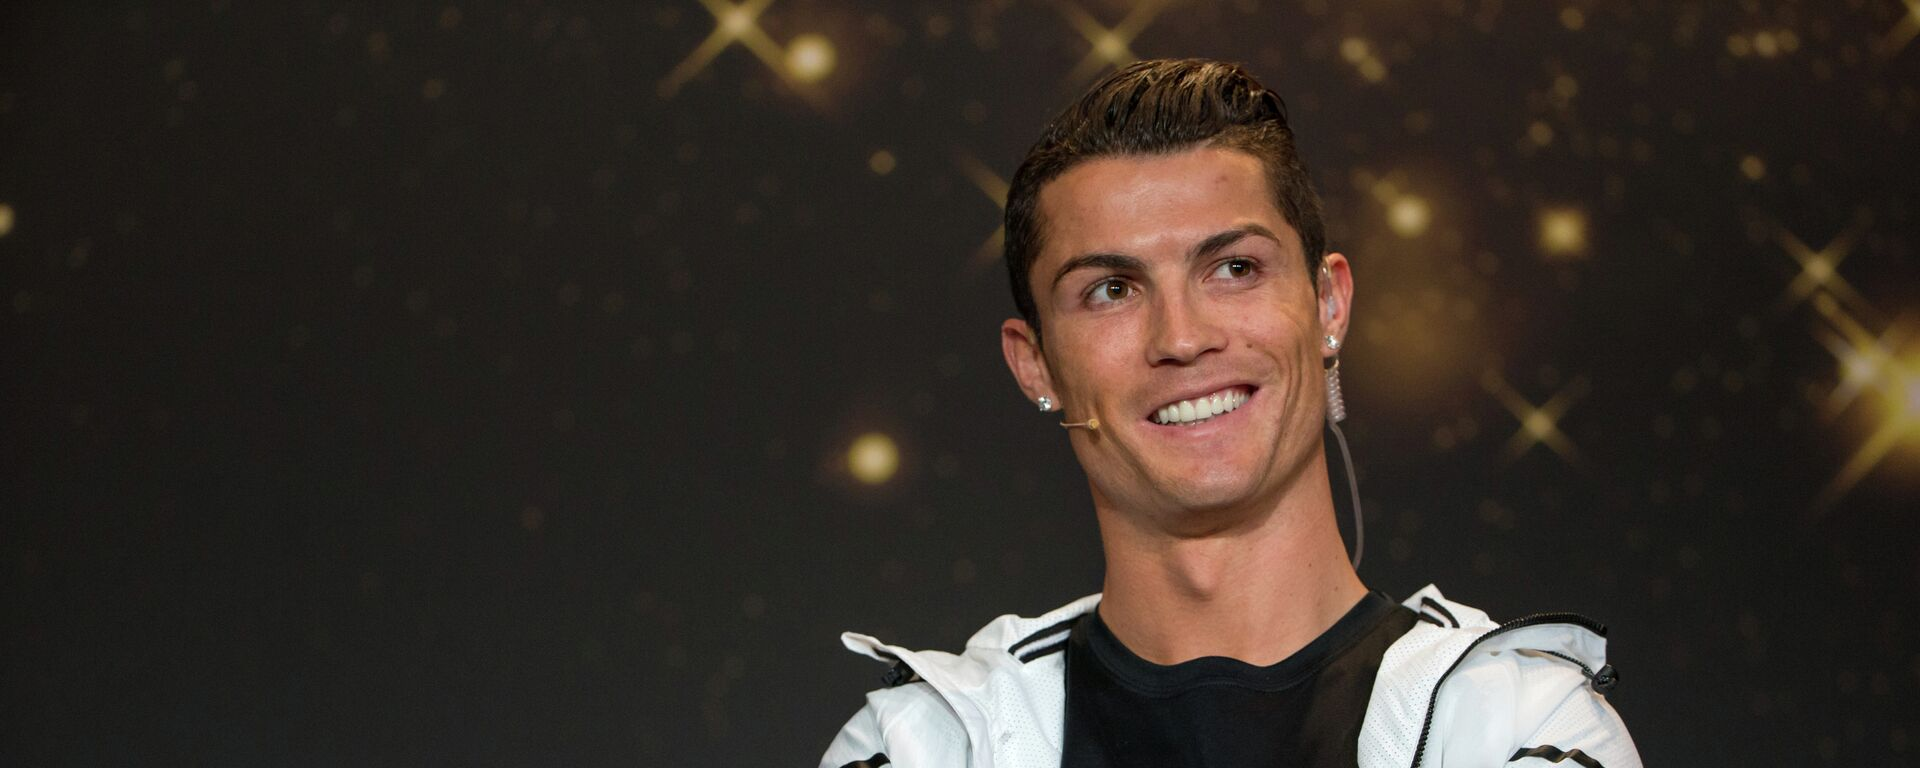 FIFA Ballon d'Or nominee Cristiano Ronaldo of Portugal and Real Madrid attends a press conference prior to the FIFA Ballon d'Or Gala 2014 at the Kongresshaus on January 12, 2015 in Zurich, Switzerland - Sputnik Česká republika, 1920, 27.08.2021